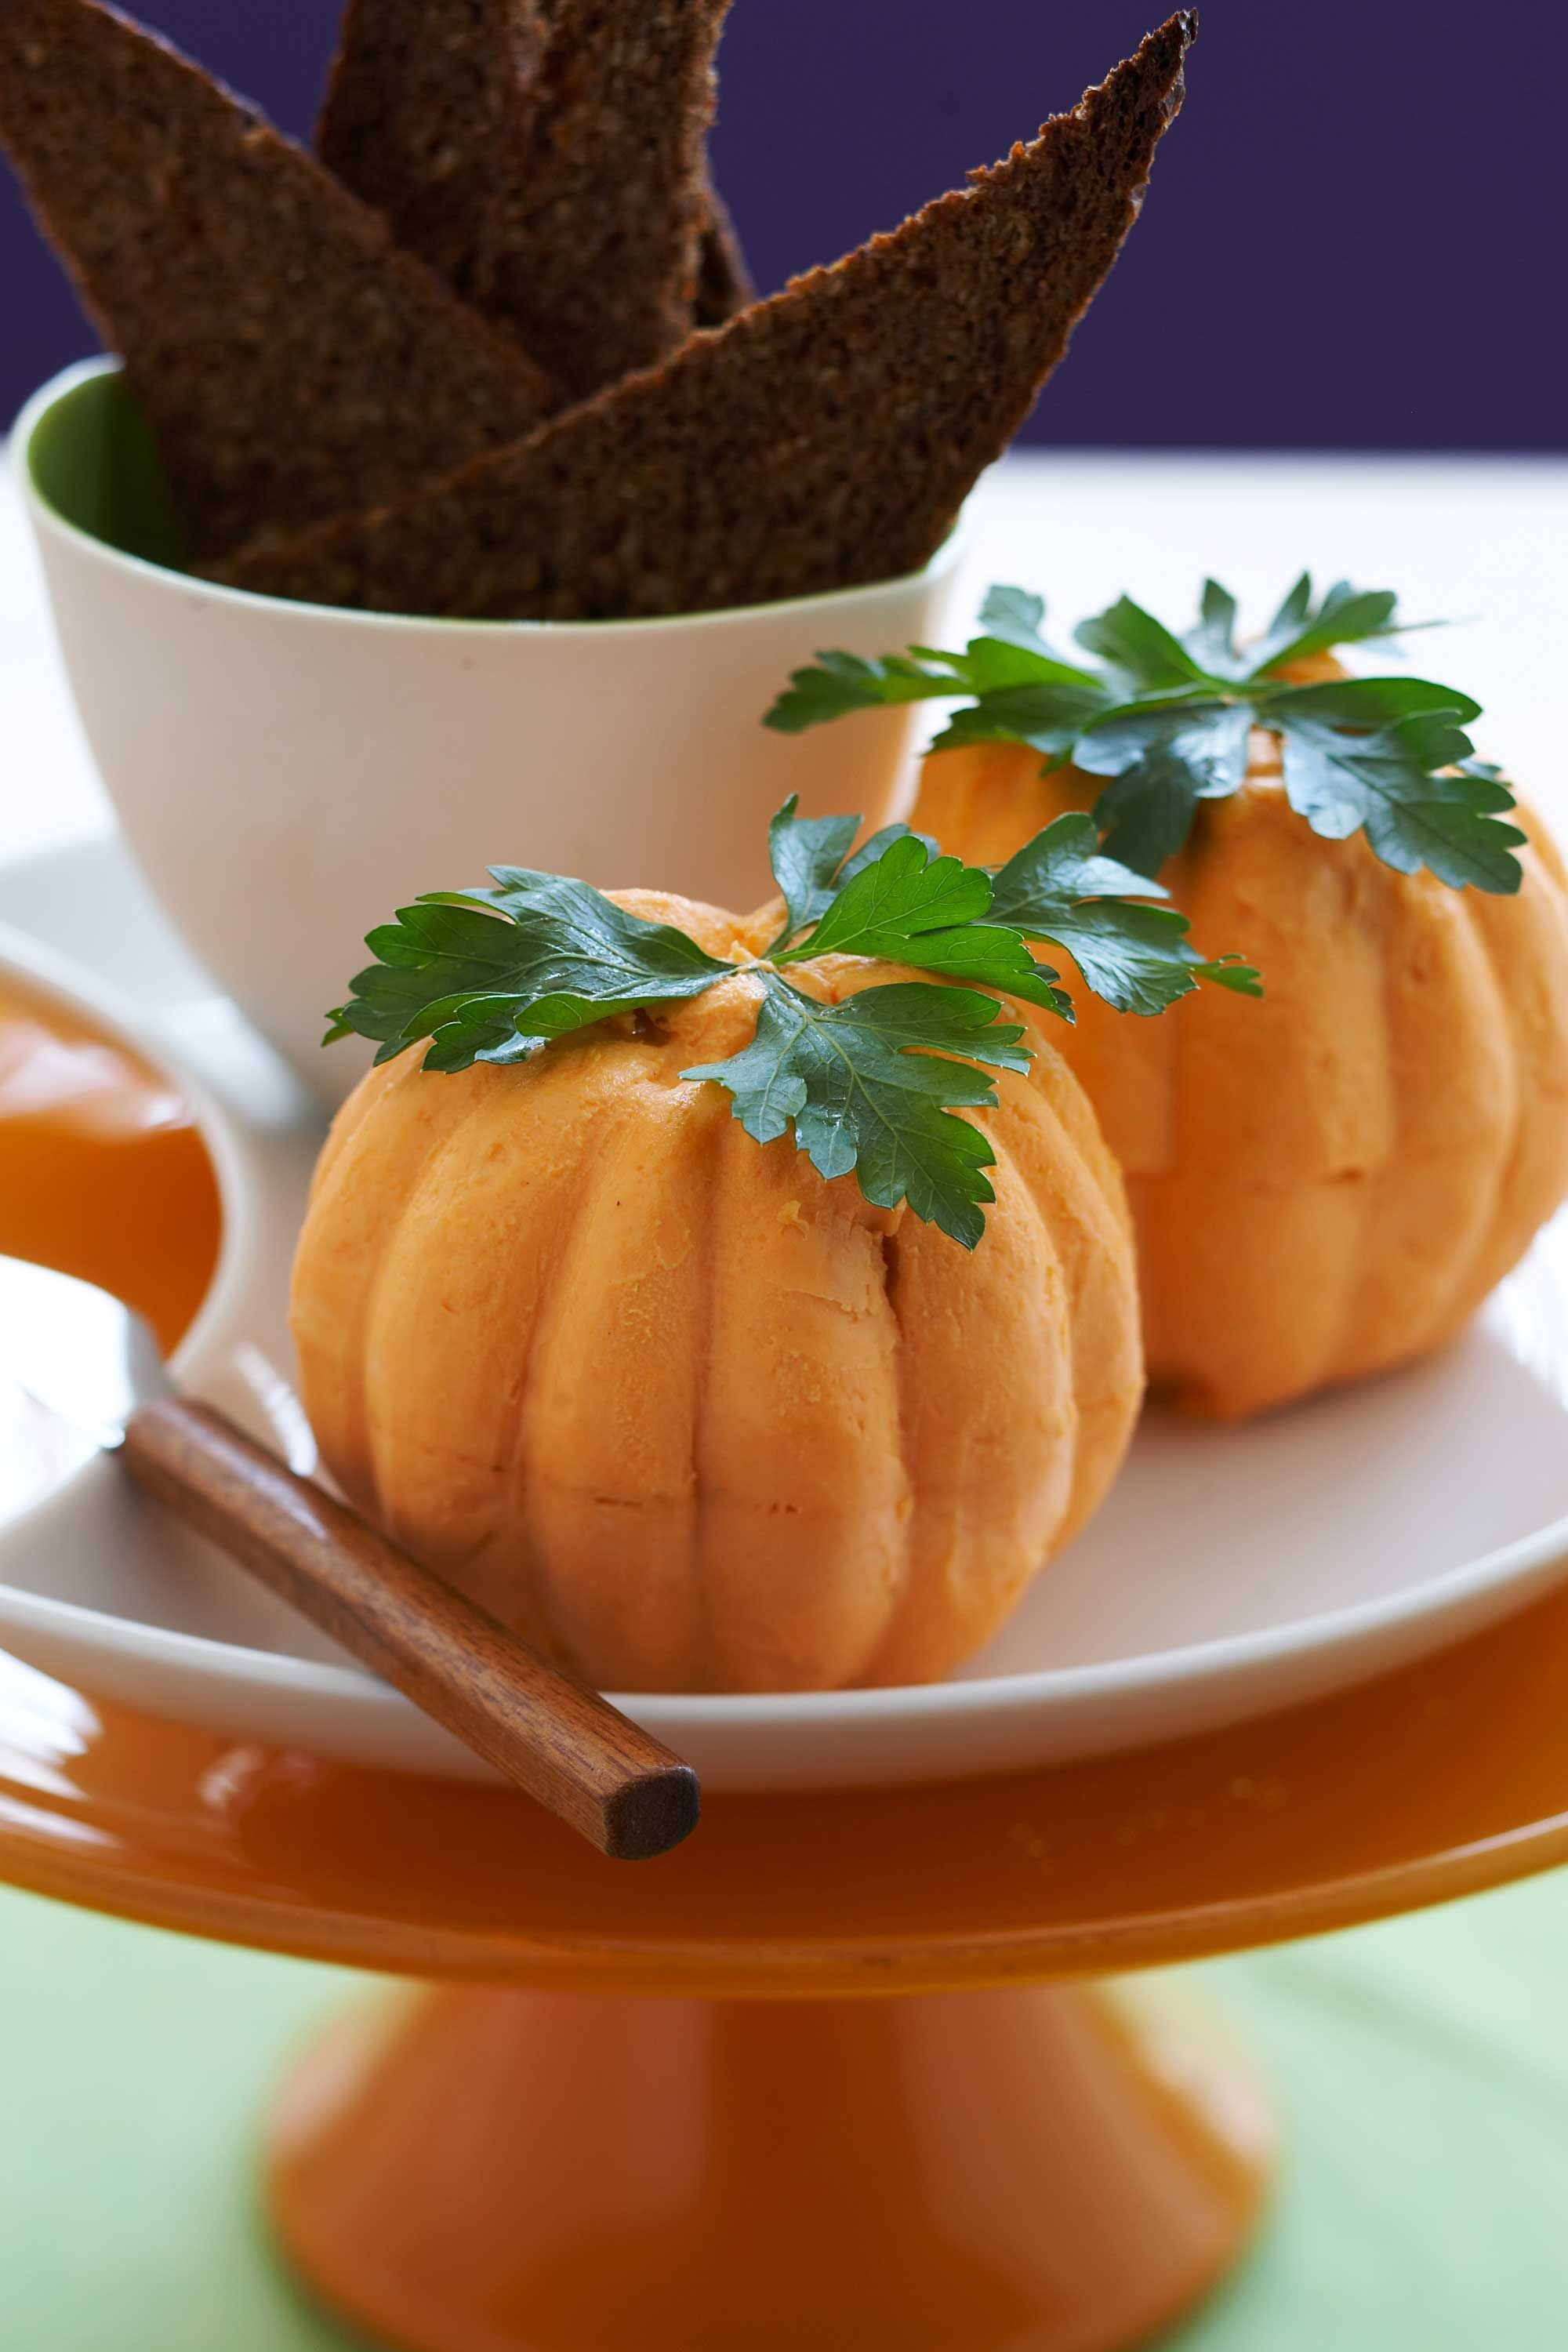 Cheese Pumpkins Halloween Dinner Idea